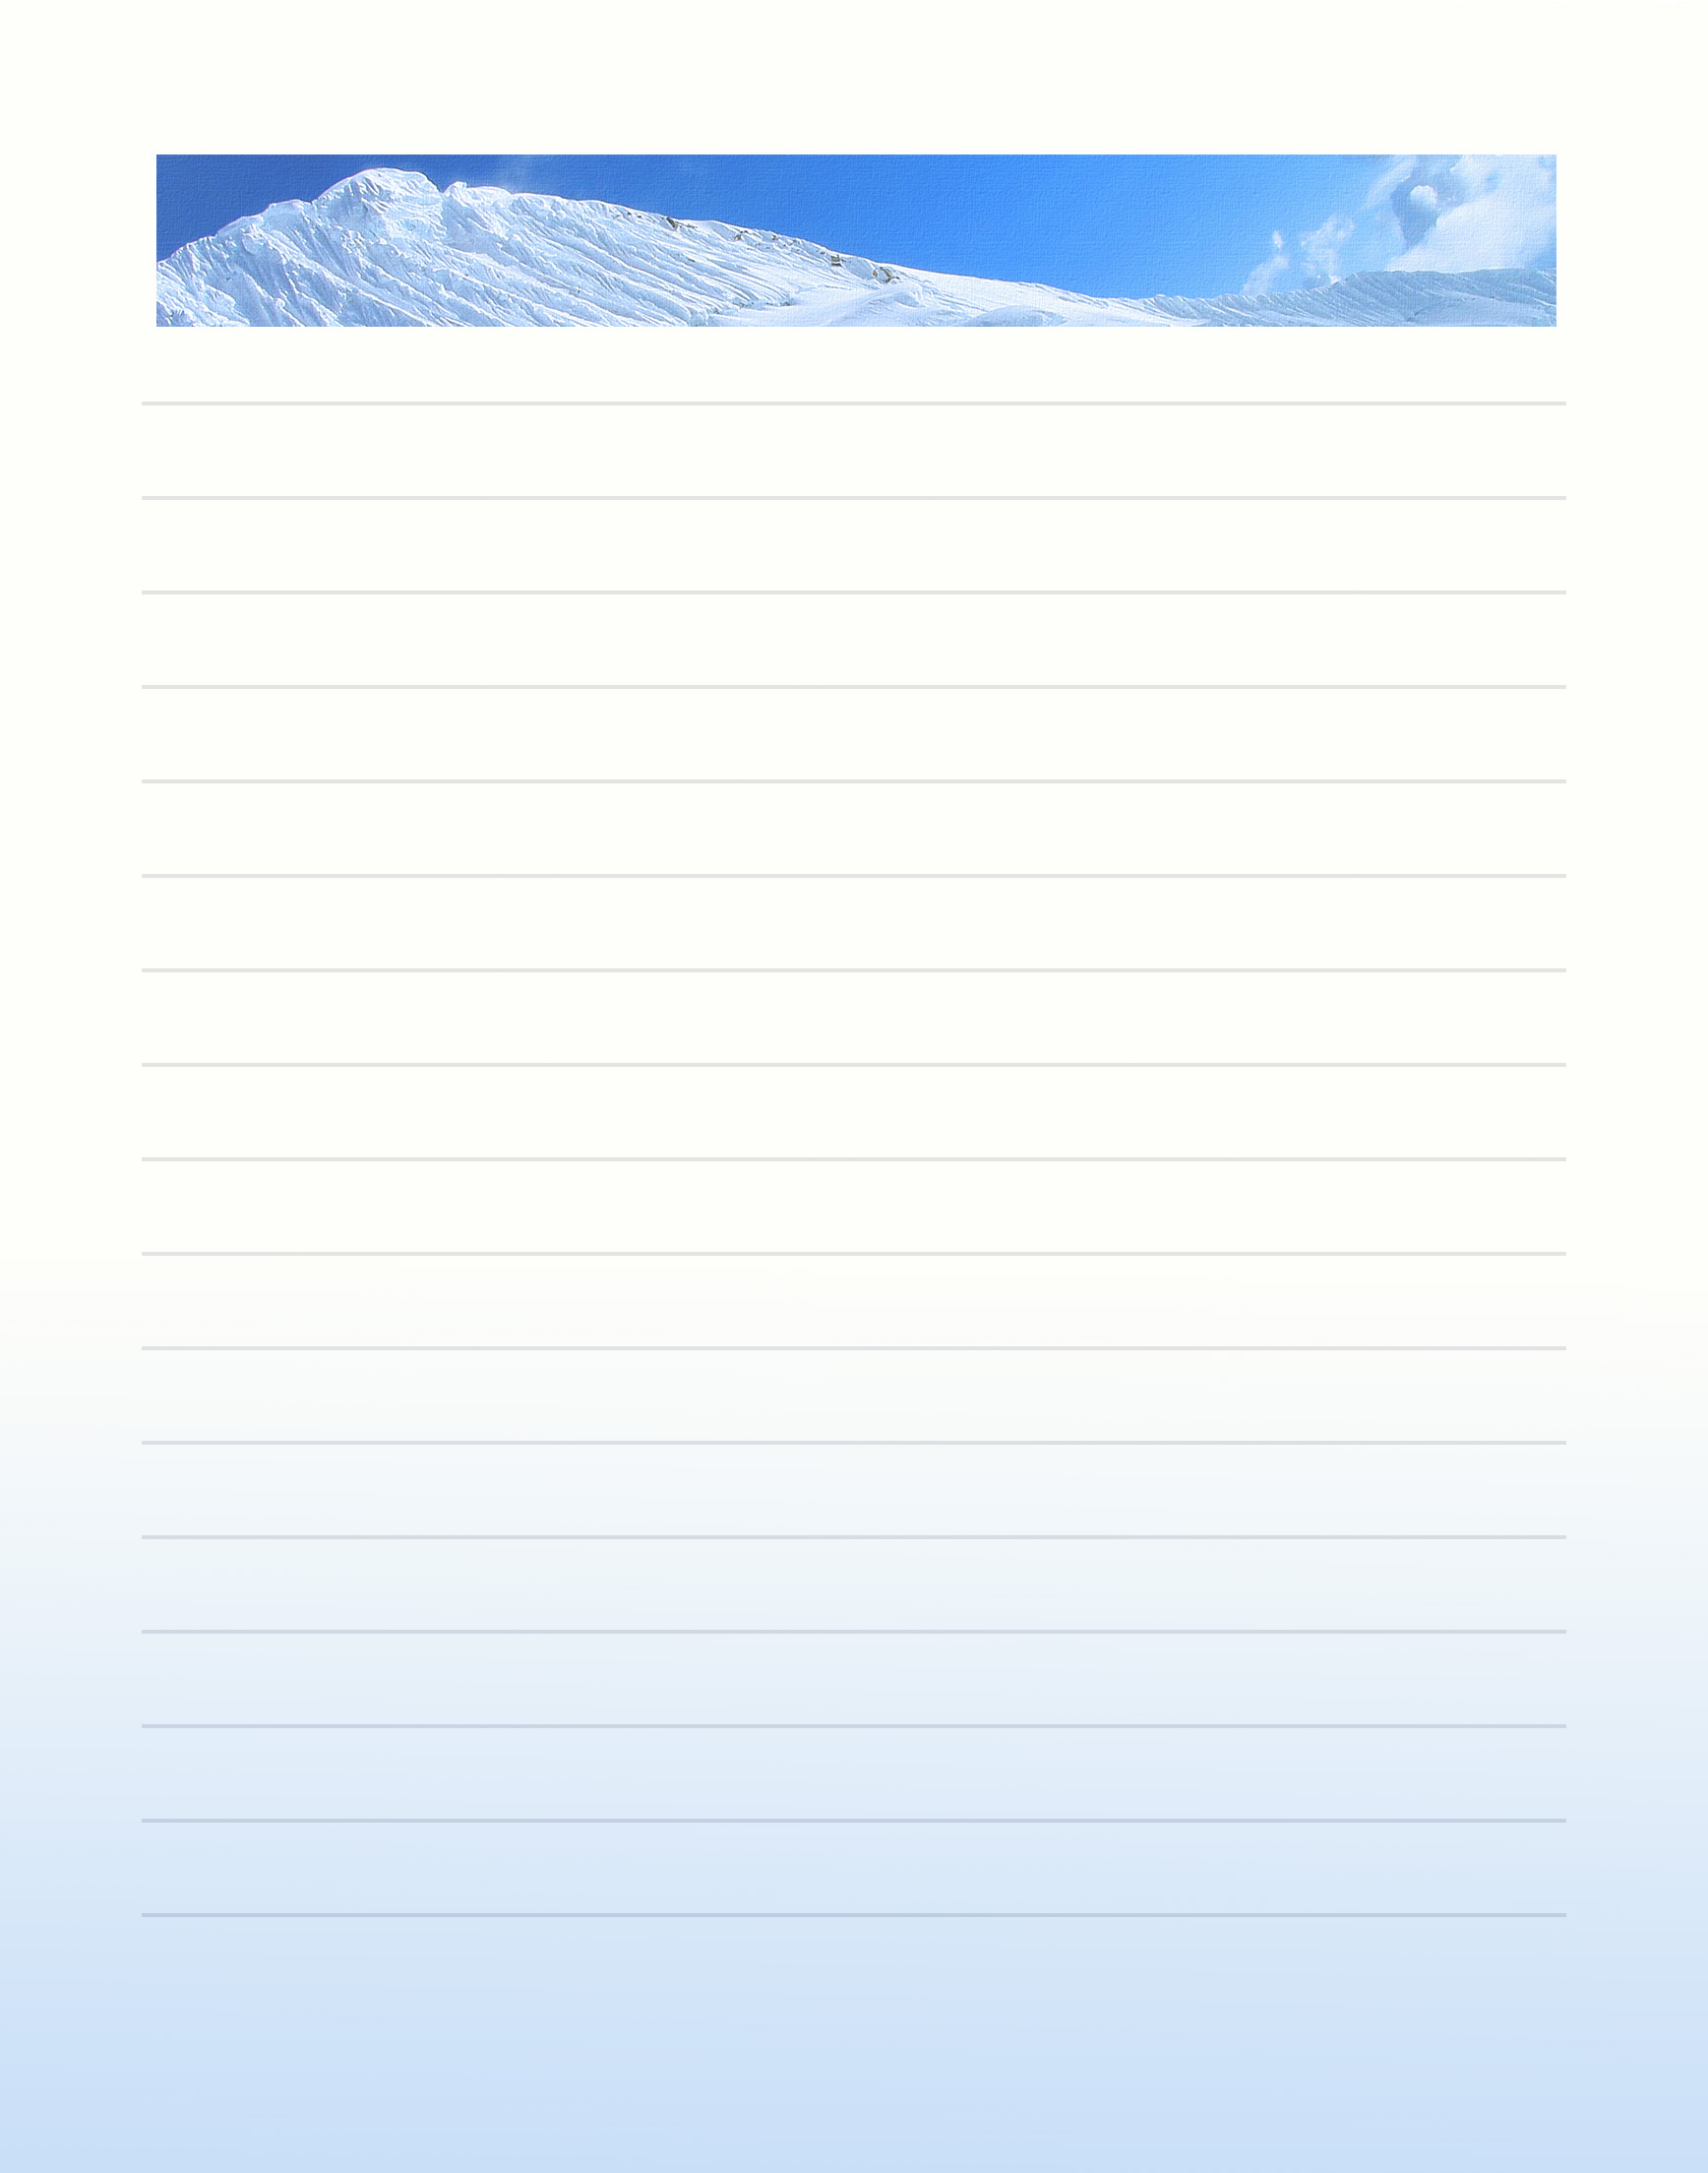 012 Winter Free Printable Stationery Template ~ Ulyssesroom - Free Printable Stationery